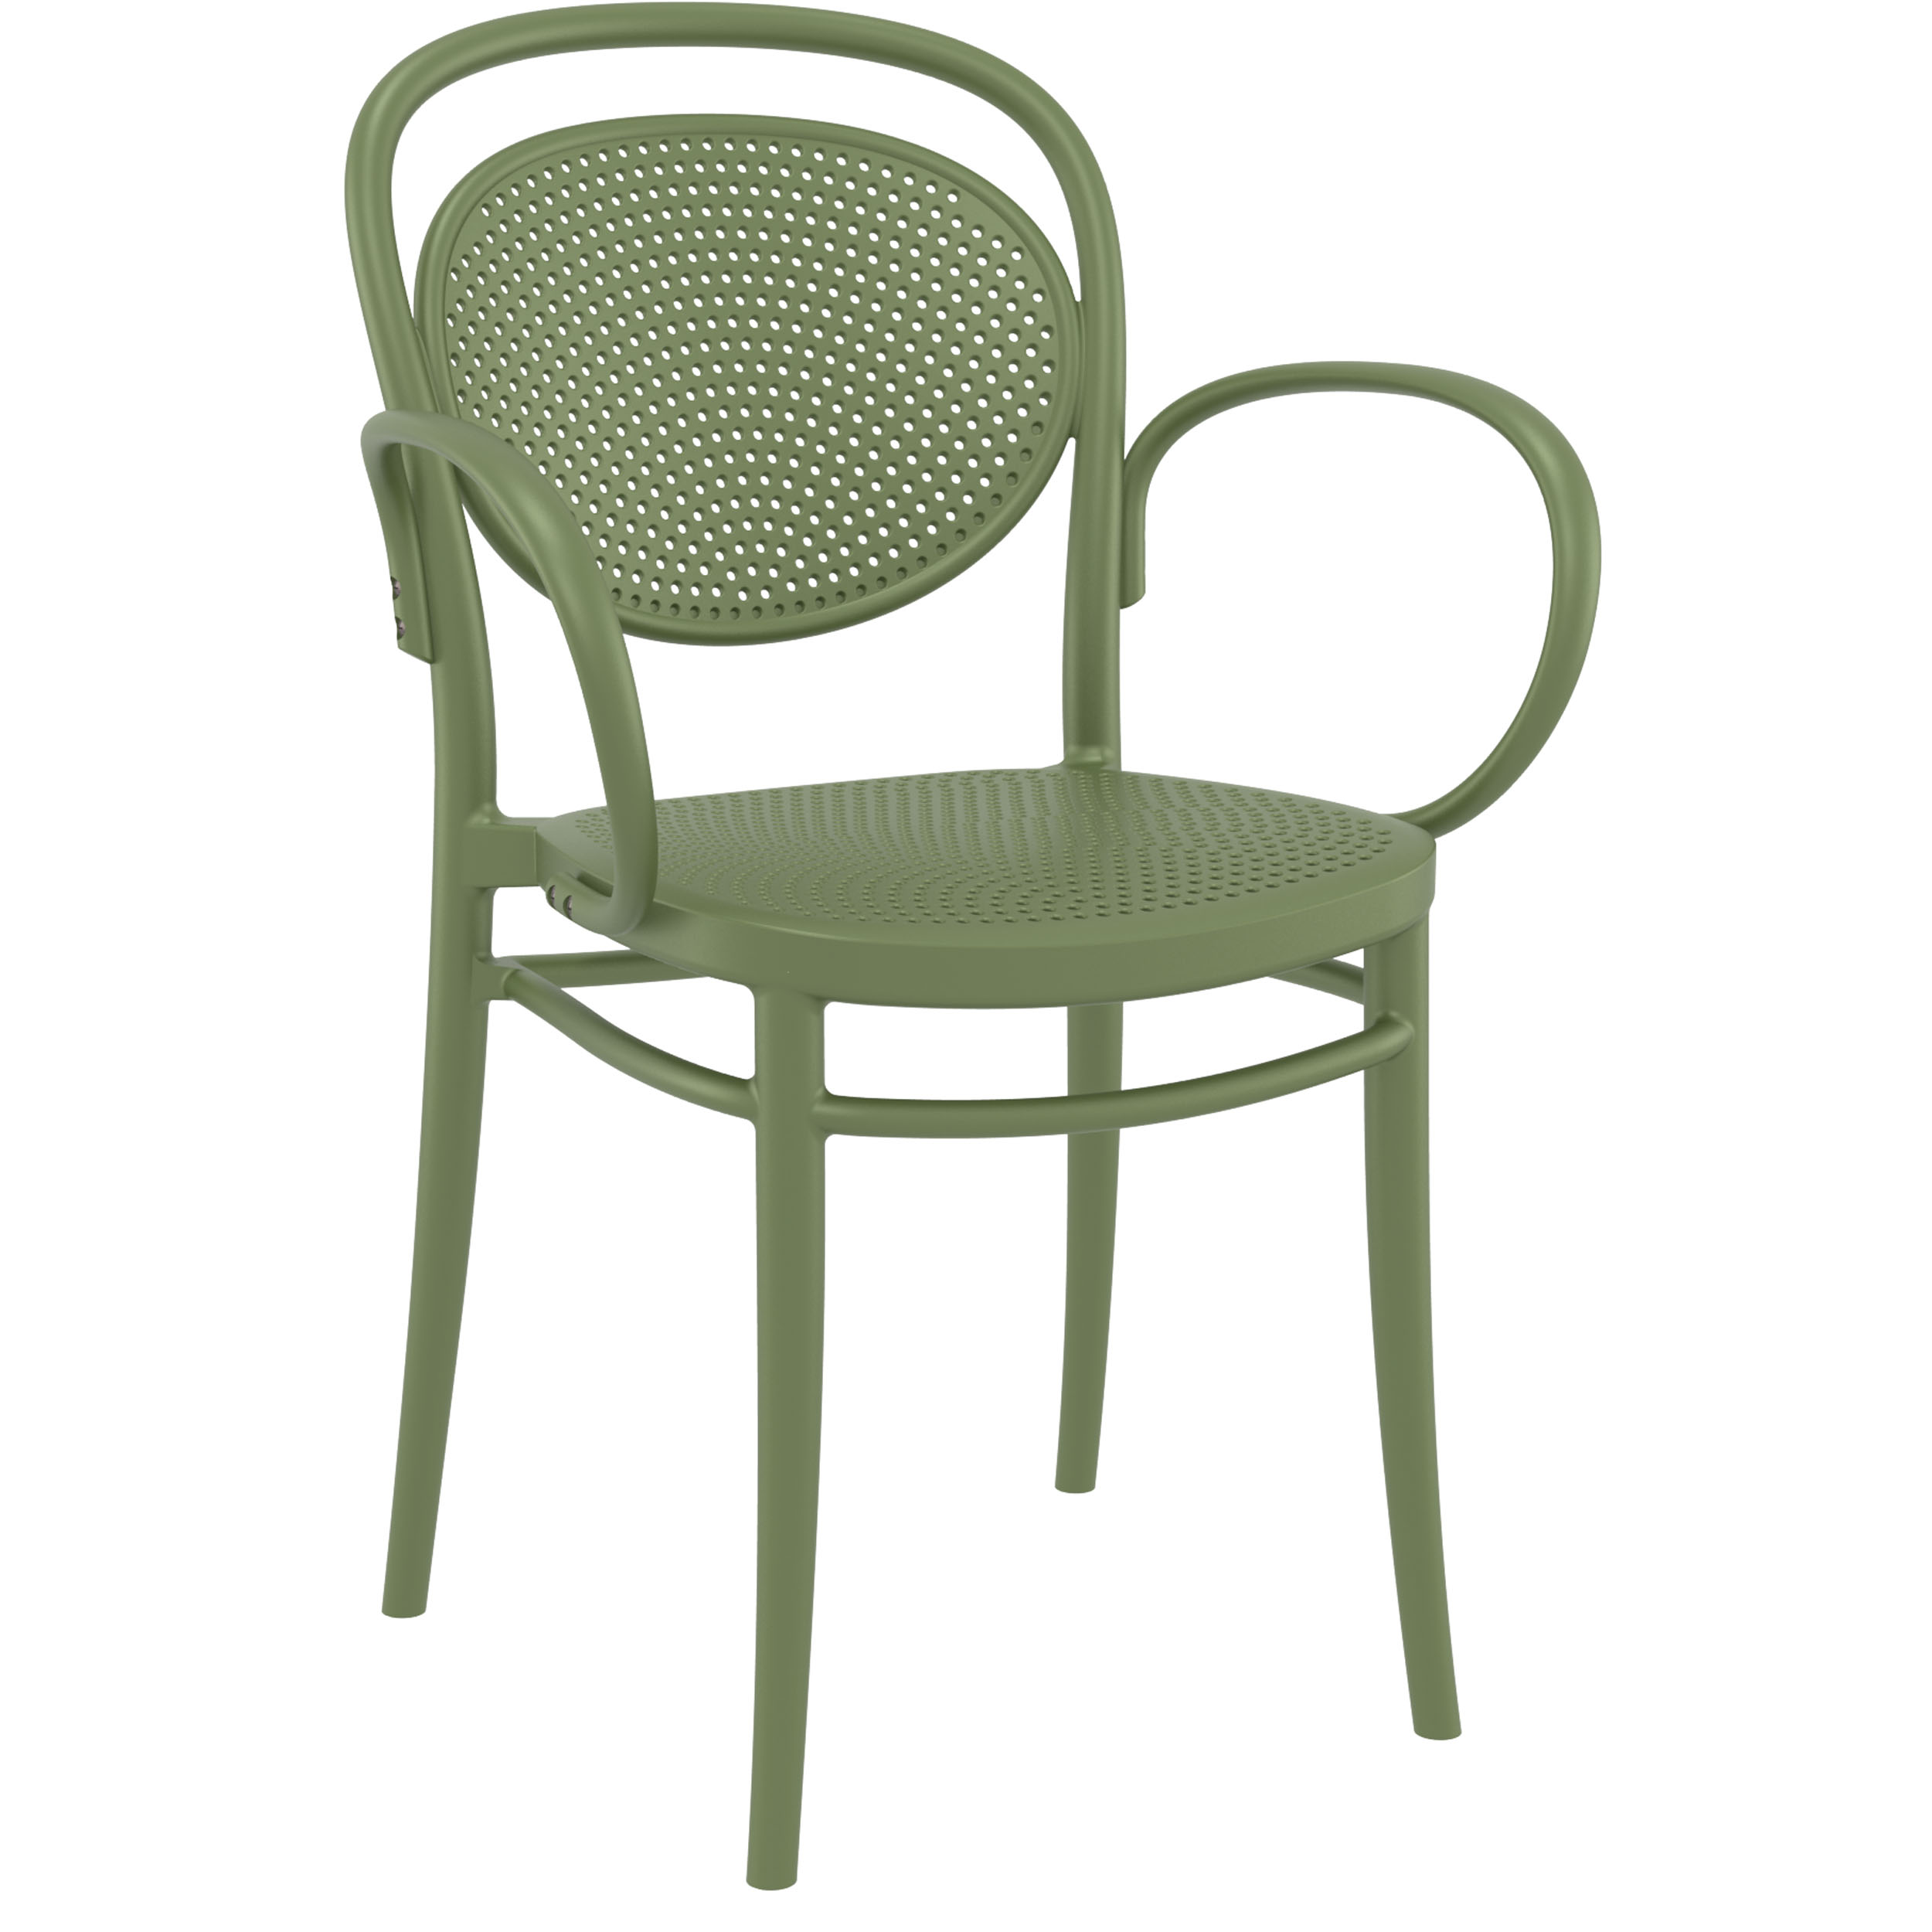 Marcel XL Chair - Olive Green